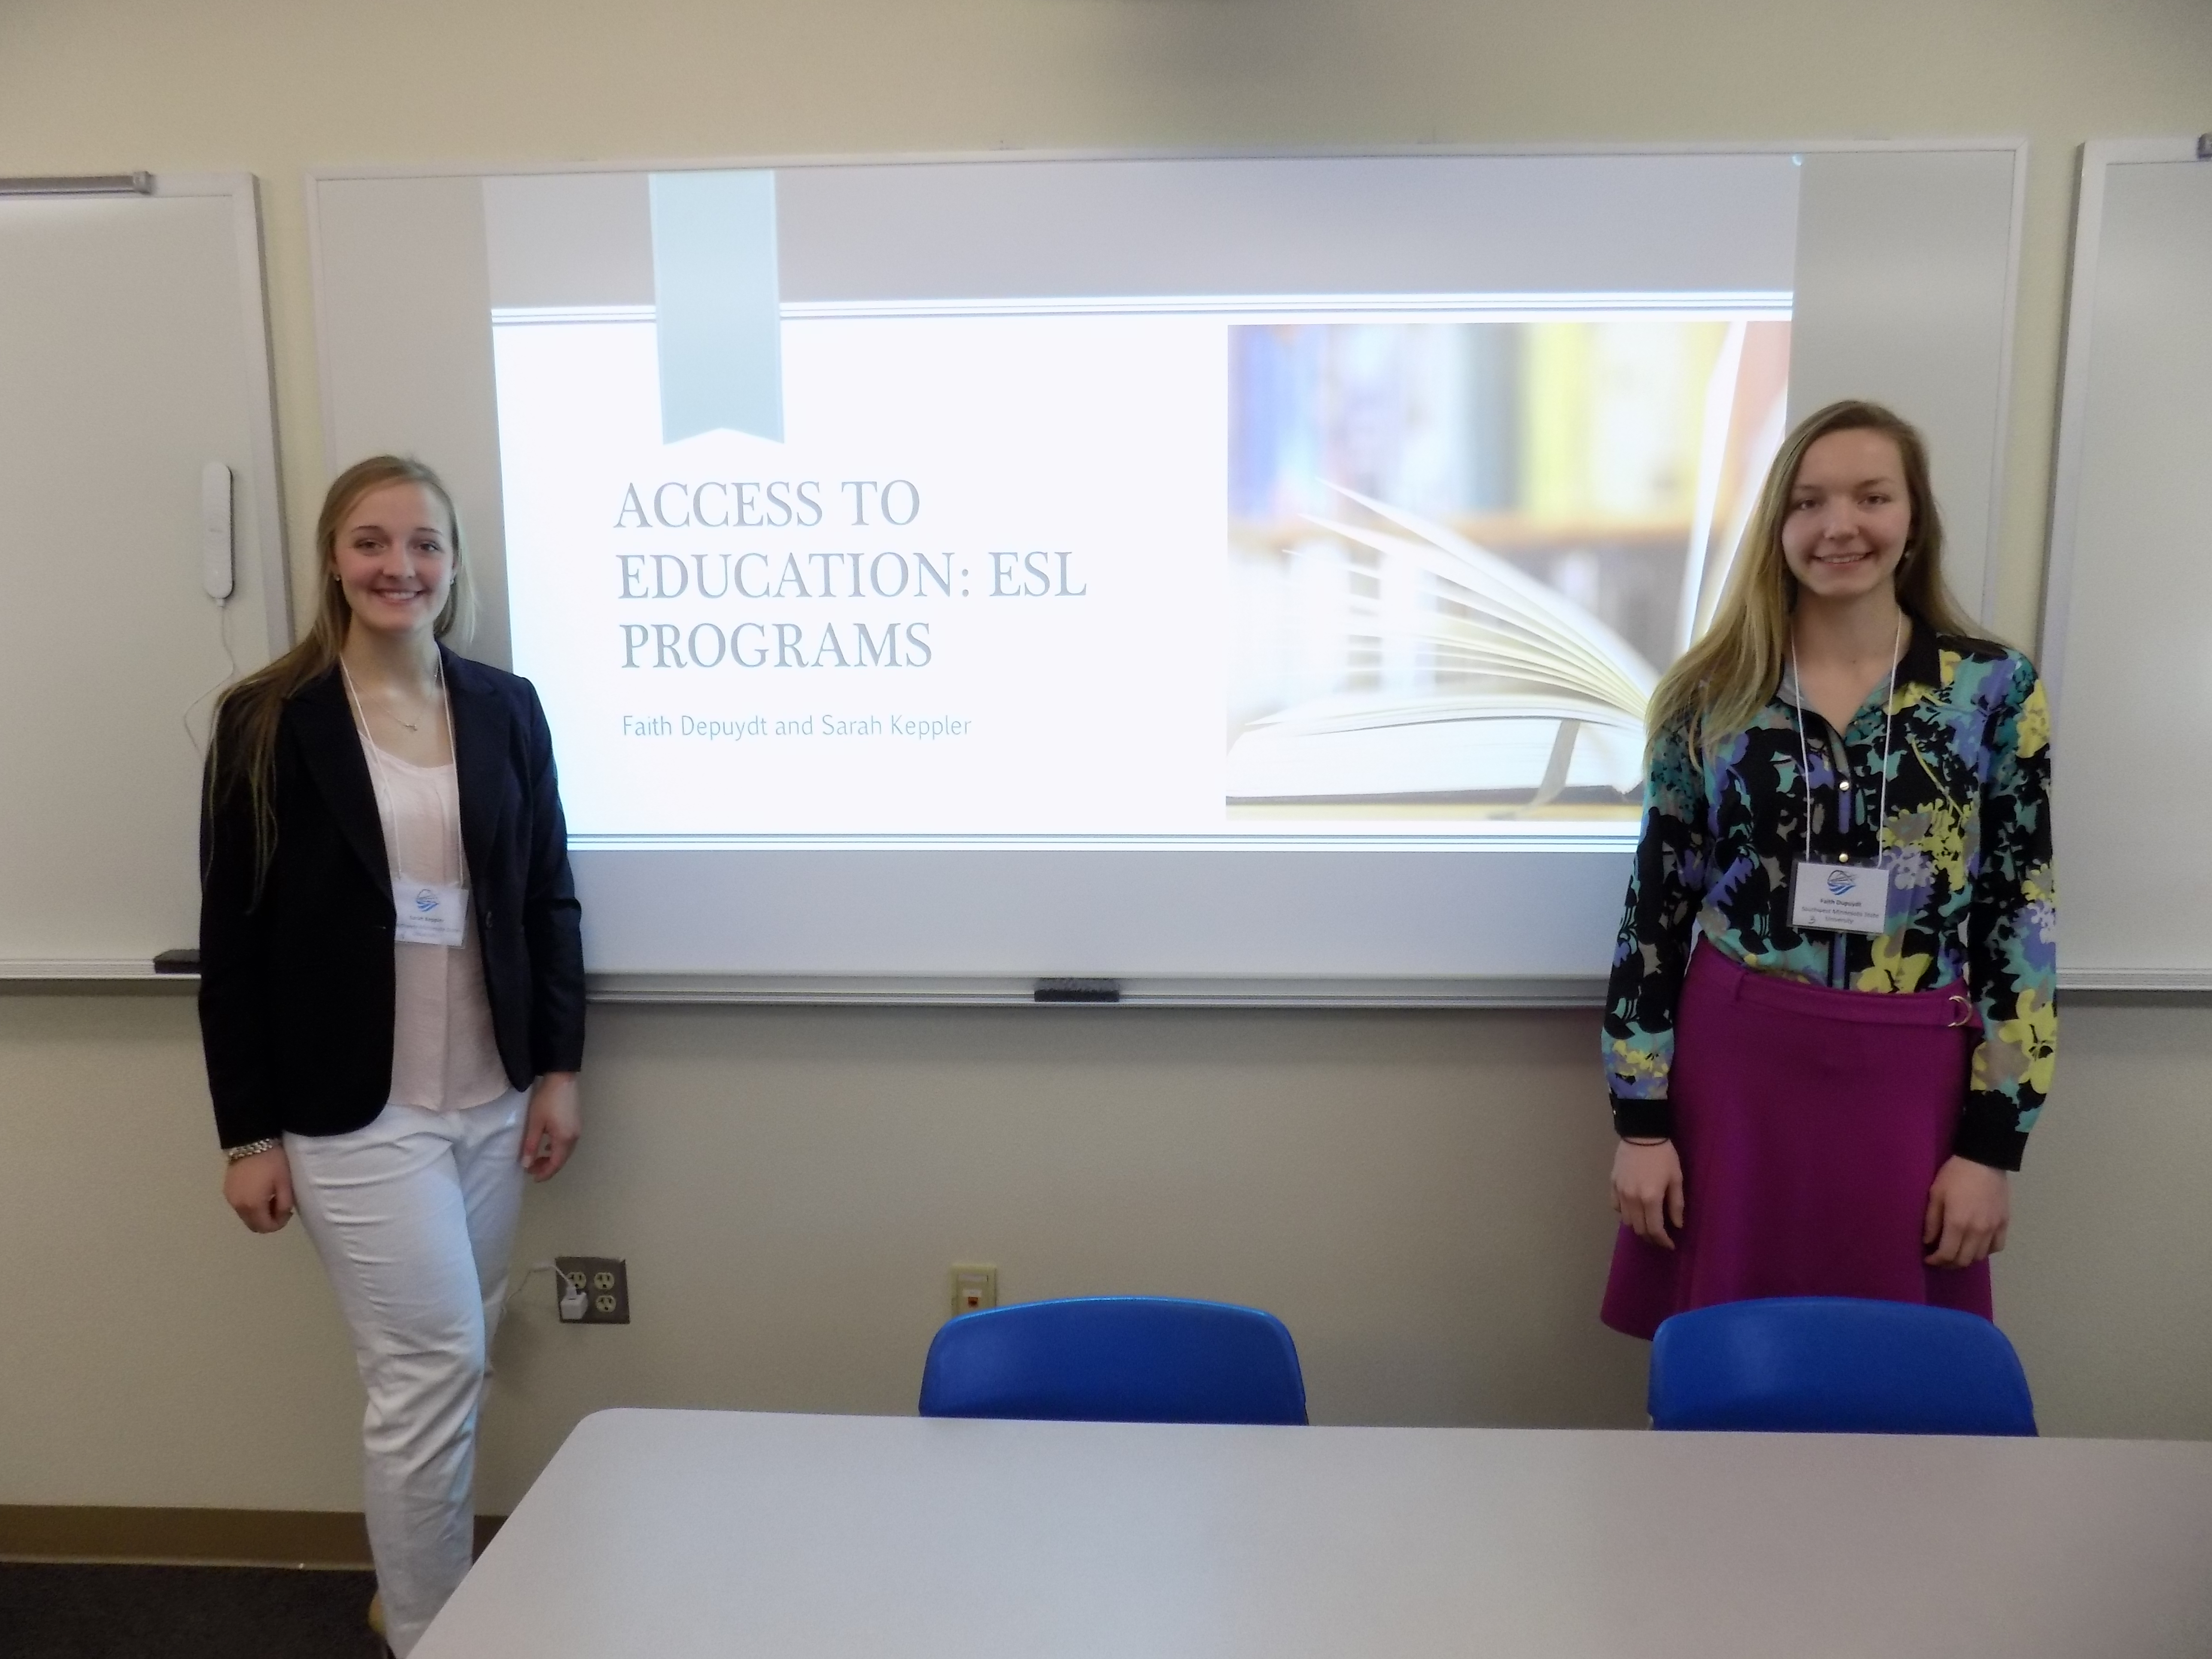 Sarah Keppler and Faith Depuydt gave a presentation